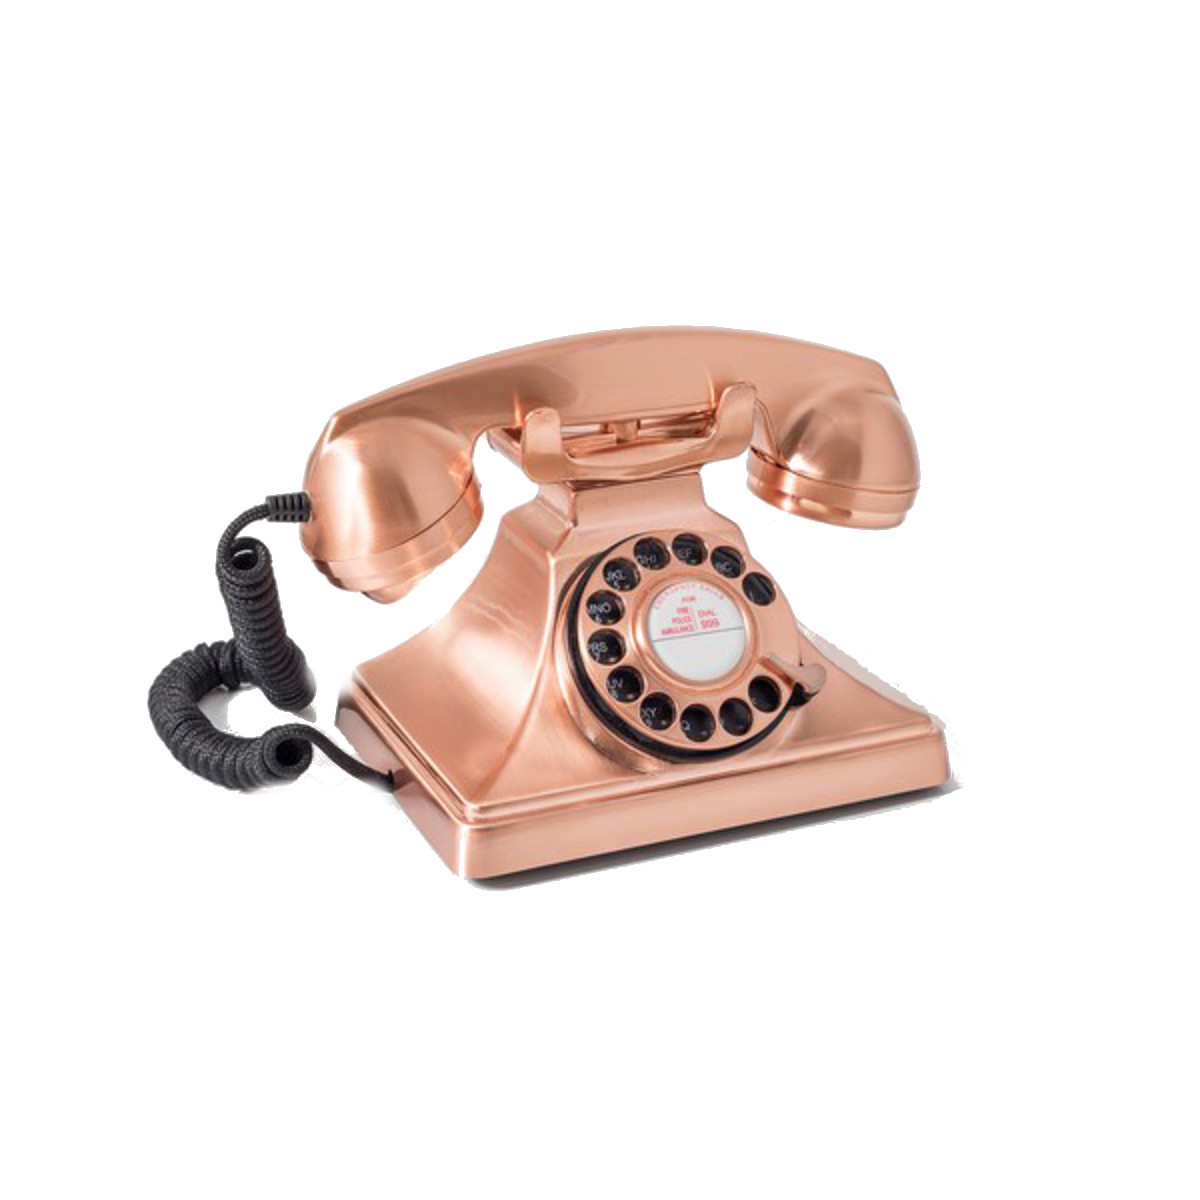 TELEPHONE CLASSIC FIFTIES DESIGN